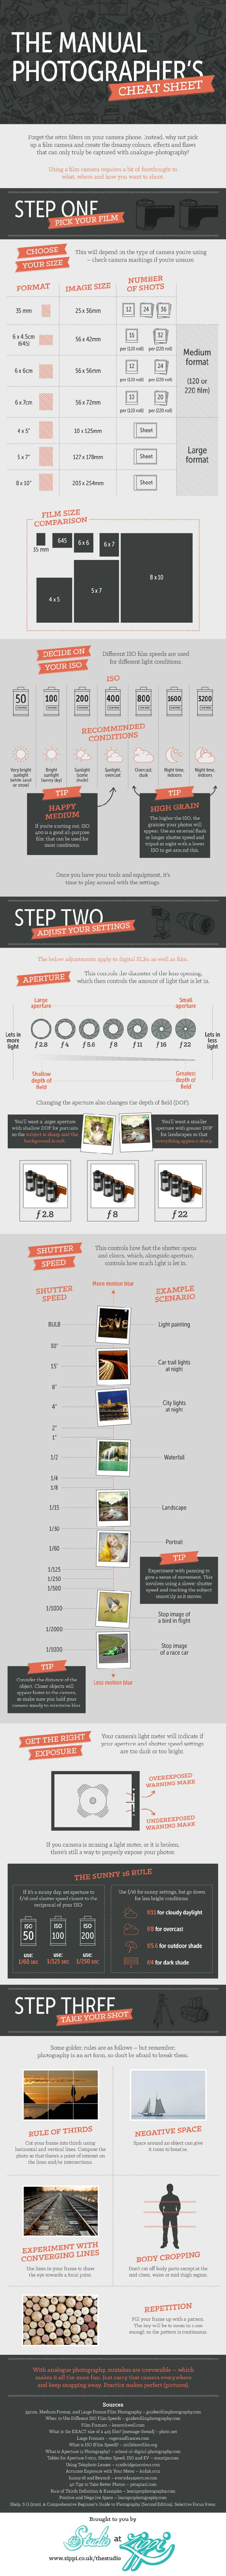 The manual photographers cheat sheet infographic